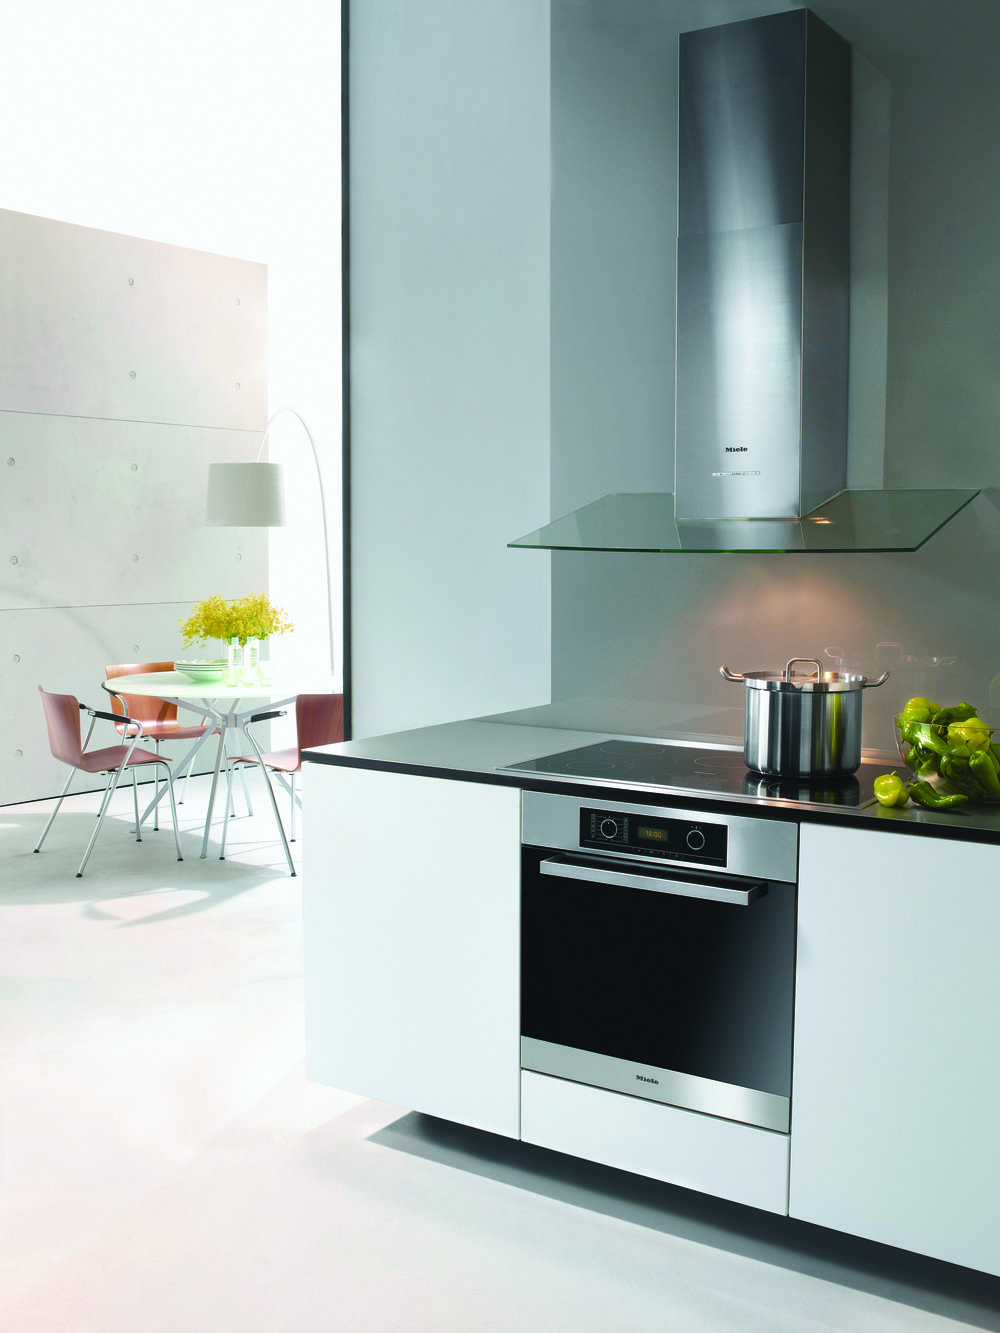 Awesome Kitchen Cooktops Gift - Modern Kitchen Set - dietmania.info